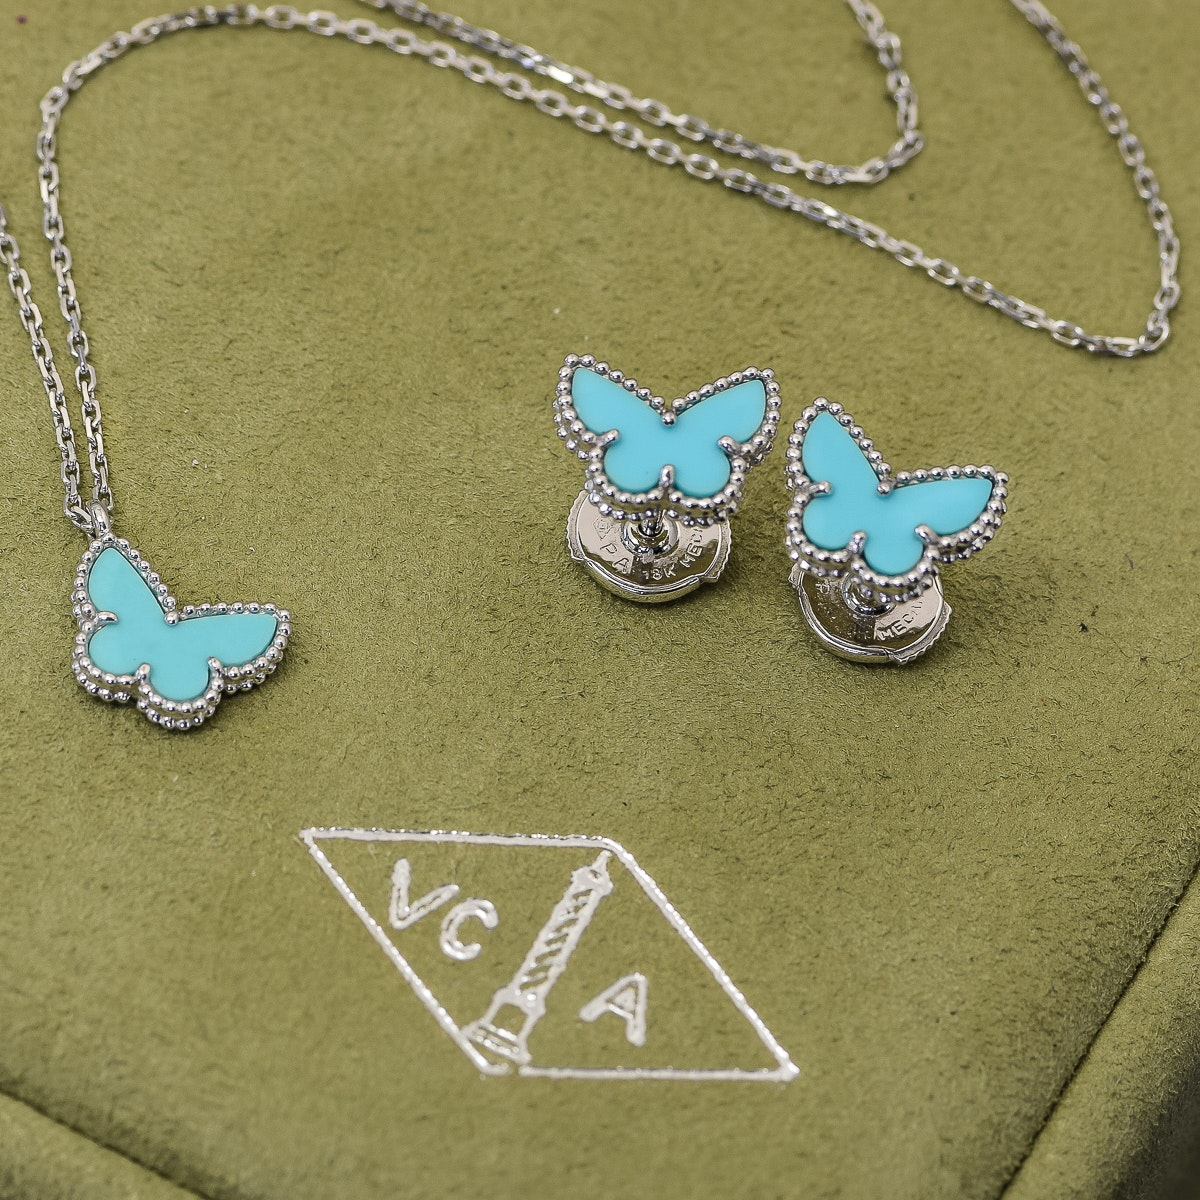 """Van Cleef & Arpels """"Sweet Alhambra"""" 18K White Gold and Turquoise Butterfly Jewelry Set"""